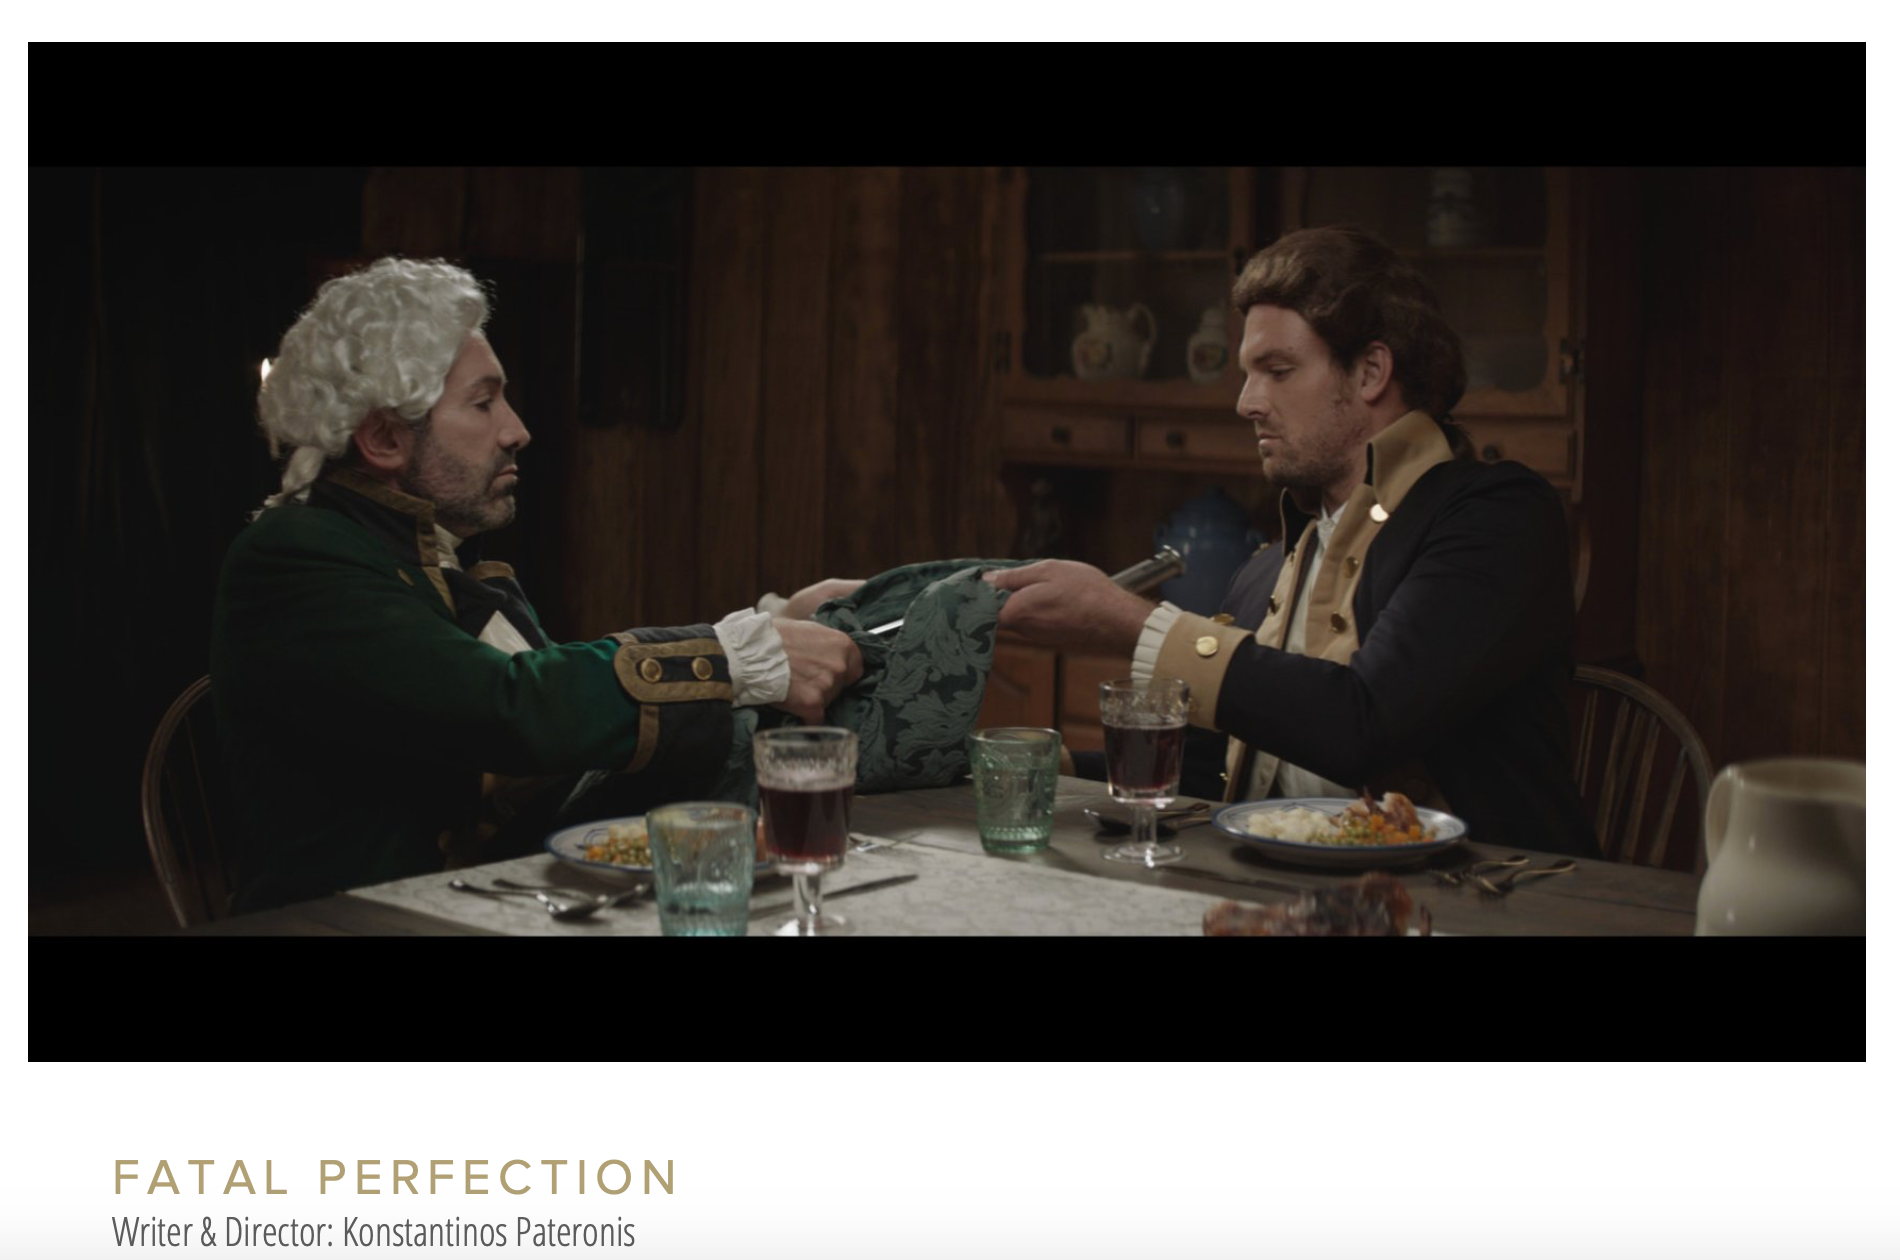 Los Angeles Film Awards Film Review - Fatal Perfection